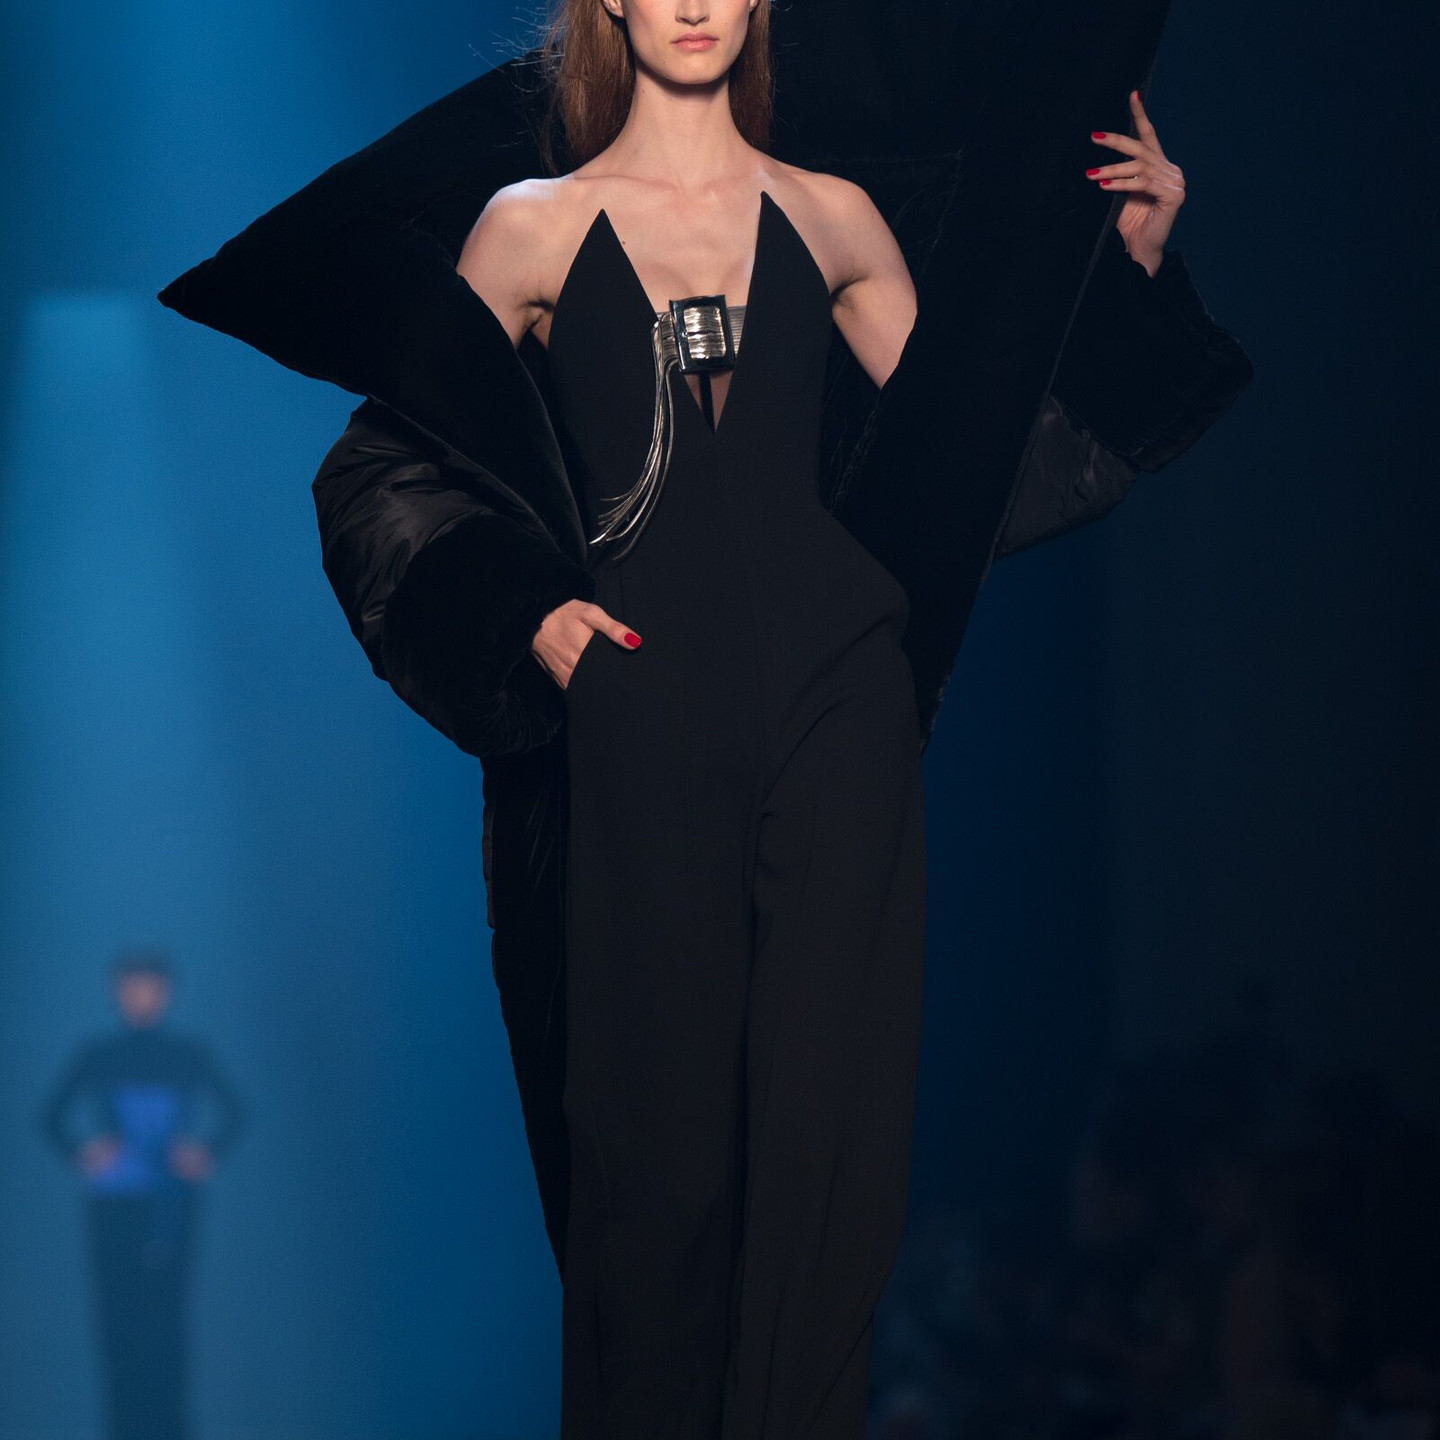 """GAULTIER PARIS collection Haute Couture Autumn / Winter 2019-2020 © Jean Paul Gaultier – all rights reserved"" Shot by: Antonio SO"